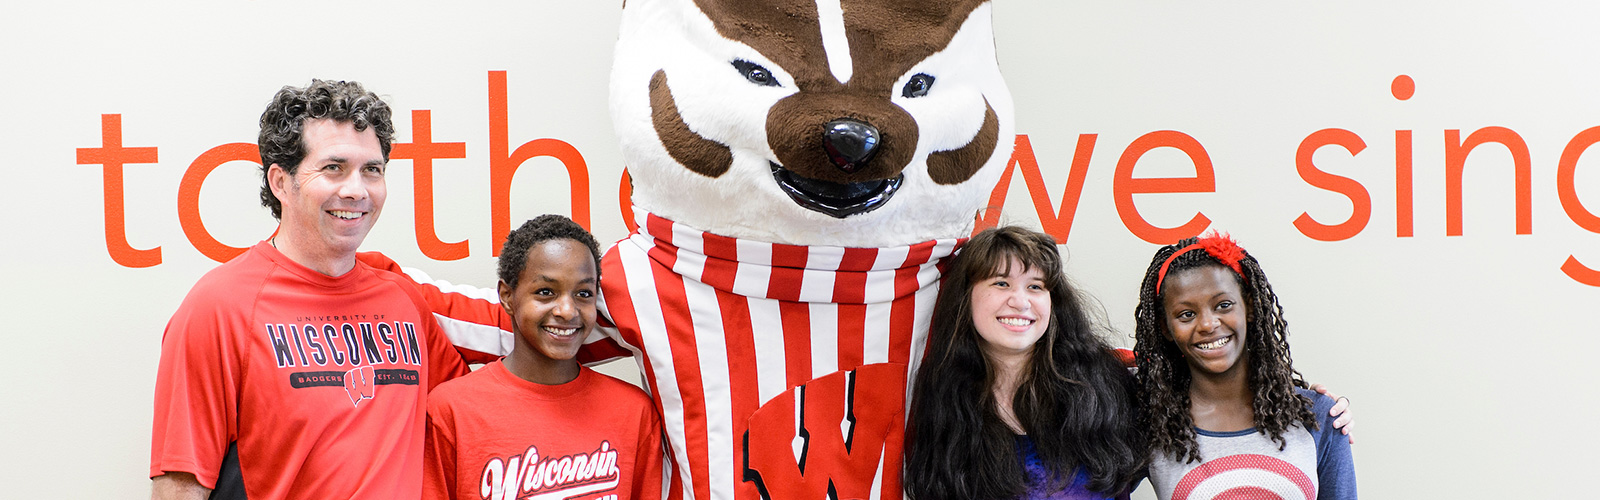 UW students and their families get their photo taken with UW mascot Bucky Badger while taking part in a Parents' Weekend festival